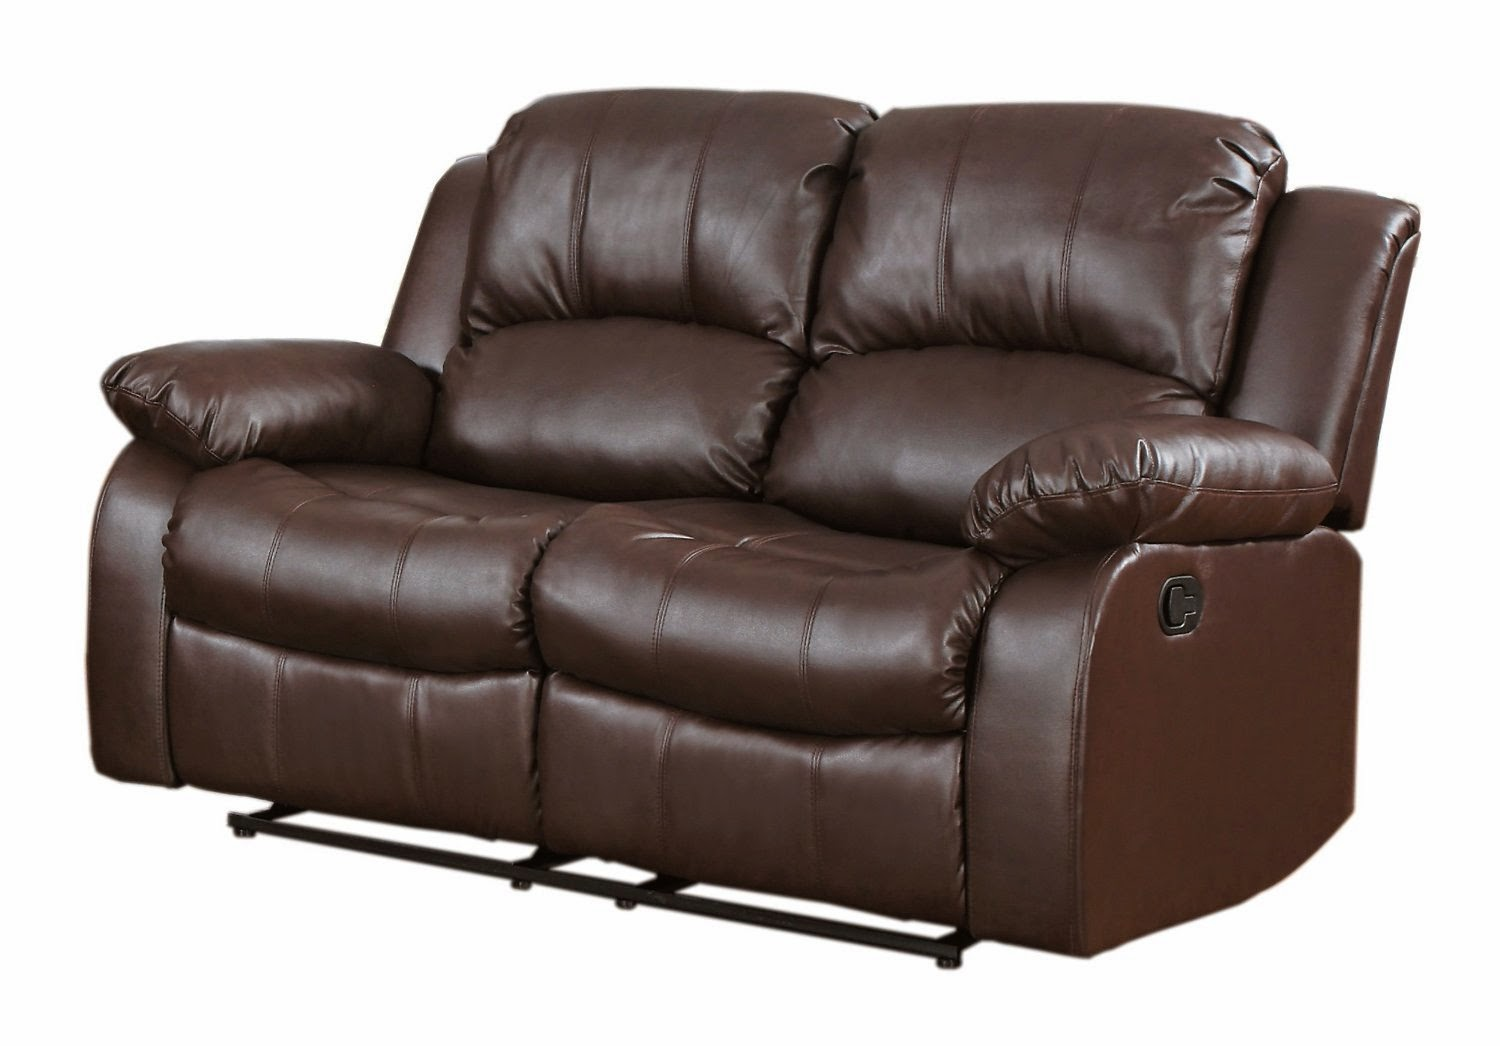 The Best Reclining Sofas Ratings Reviews 2 Seater Leather Recliner Sofa Uk